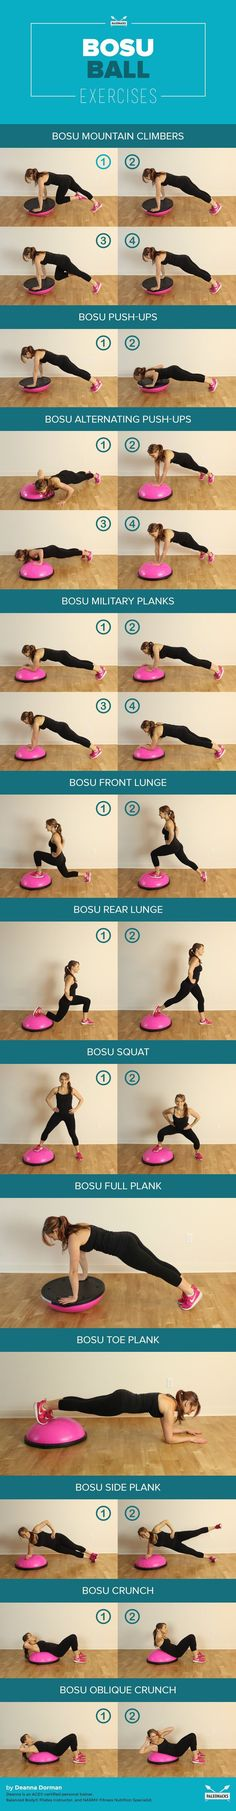 BOSU balls are great for incorporating balance challenges to your workouts and improving stability.